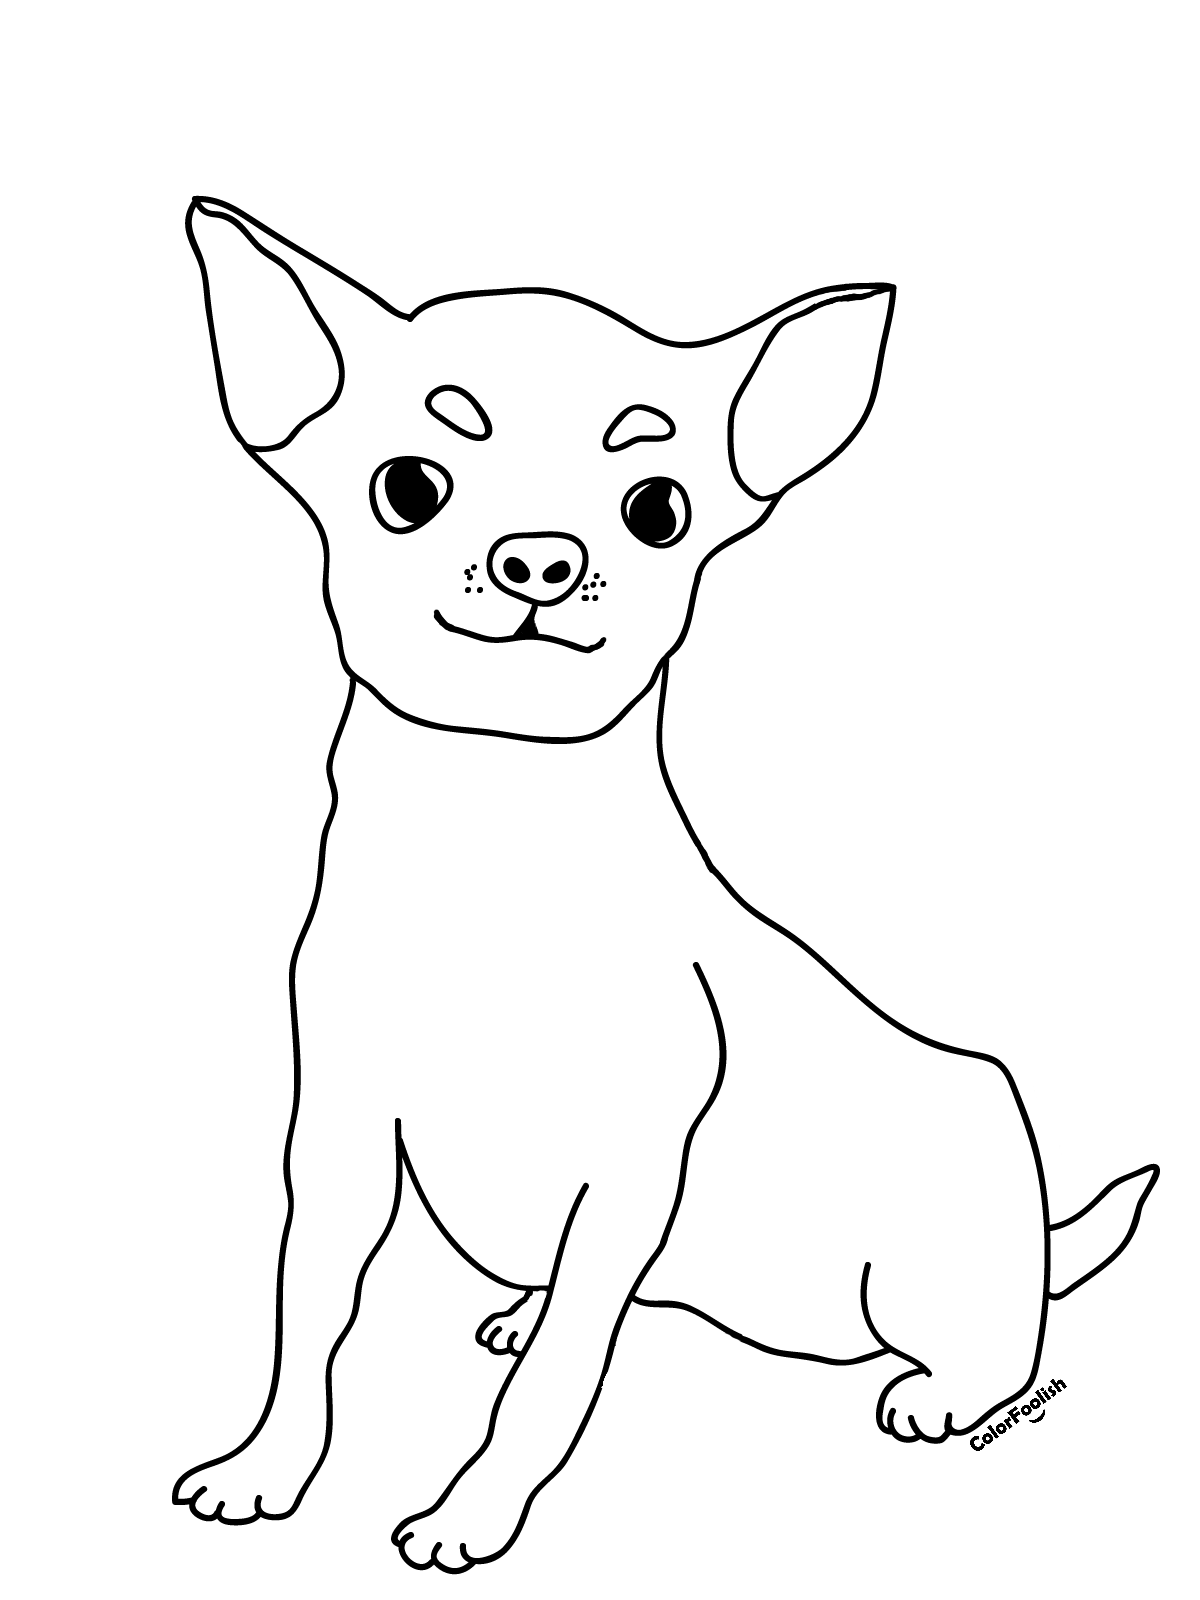 Coloring page of a chihuahua dog